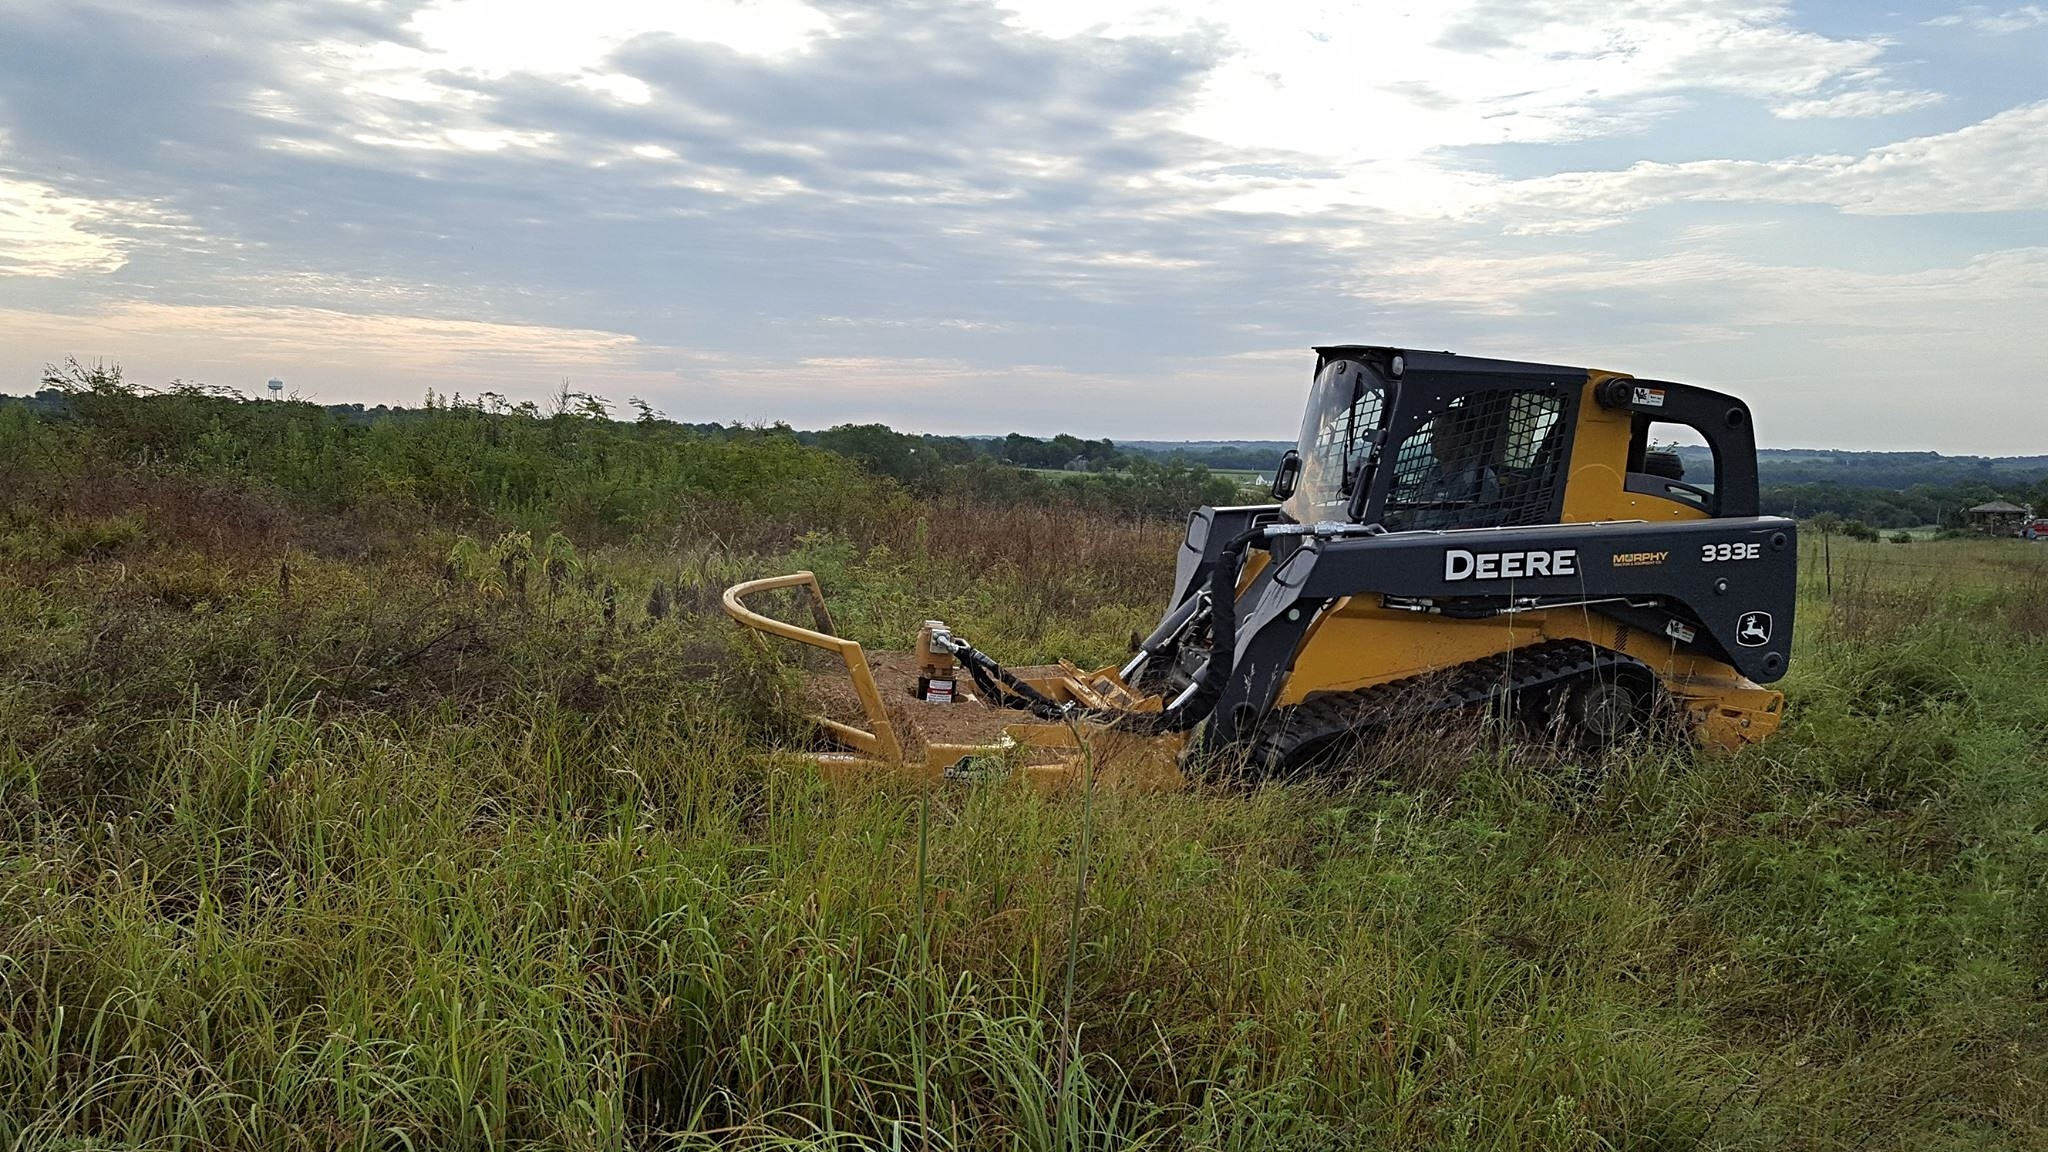 Skid-Steer Rotary Mower in action in the Midwest